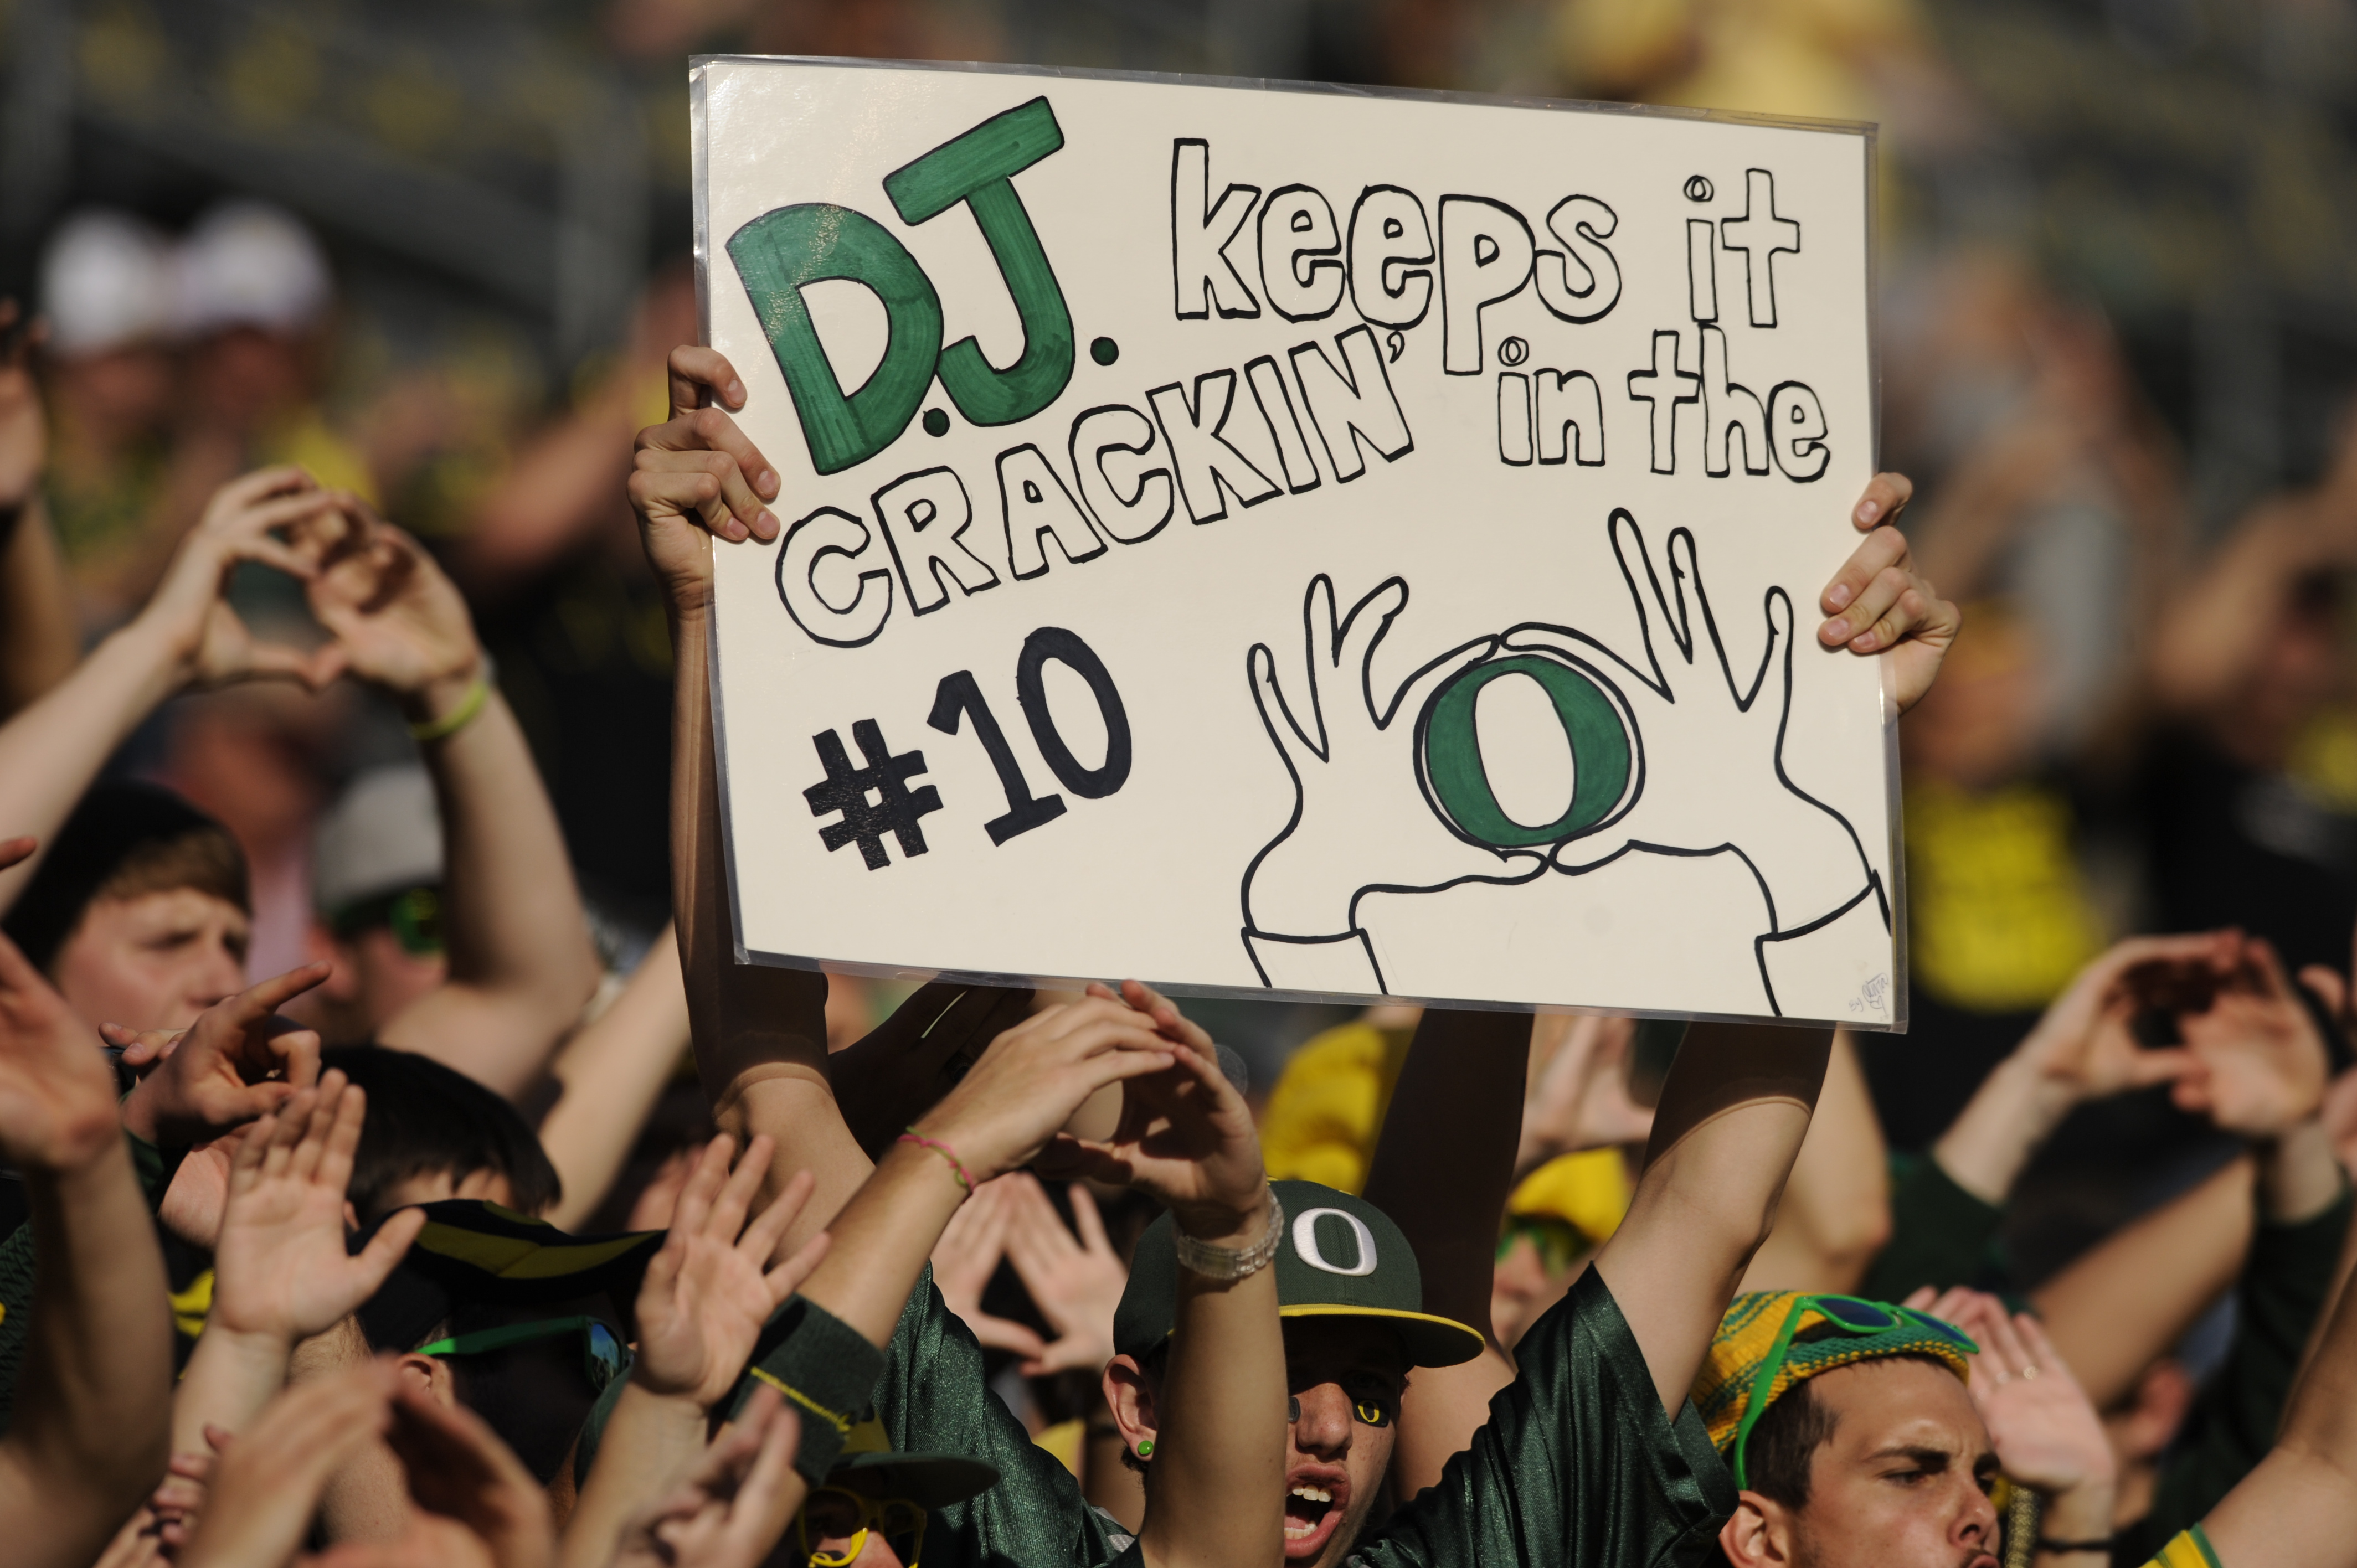 EUGENE, OR - OCTOBER 2: A sign in the stands supports wide receiver D.J. Davis of the Oregon Ducks warms before the start of the game at Autzen Stadium on October 2, 2010 in Eugene, Oregon. Oregon won the game 52-31. (Photo by Steve Dykes/Getty Images)